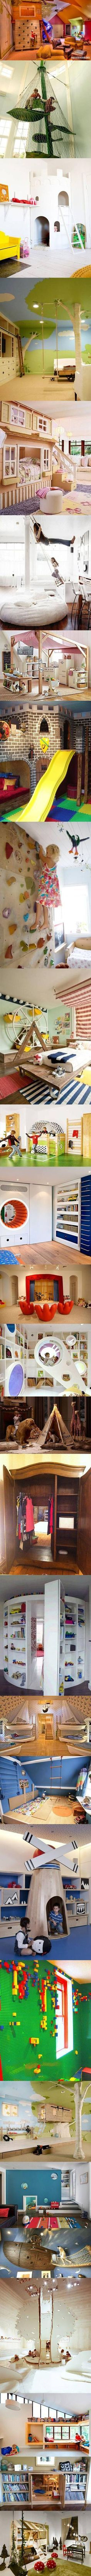 Indoor swings, climbing walls, and secret cubbies.  Great playroom ideas.  (No need to click over to actual site - it's just the pictures.)